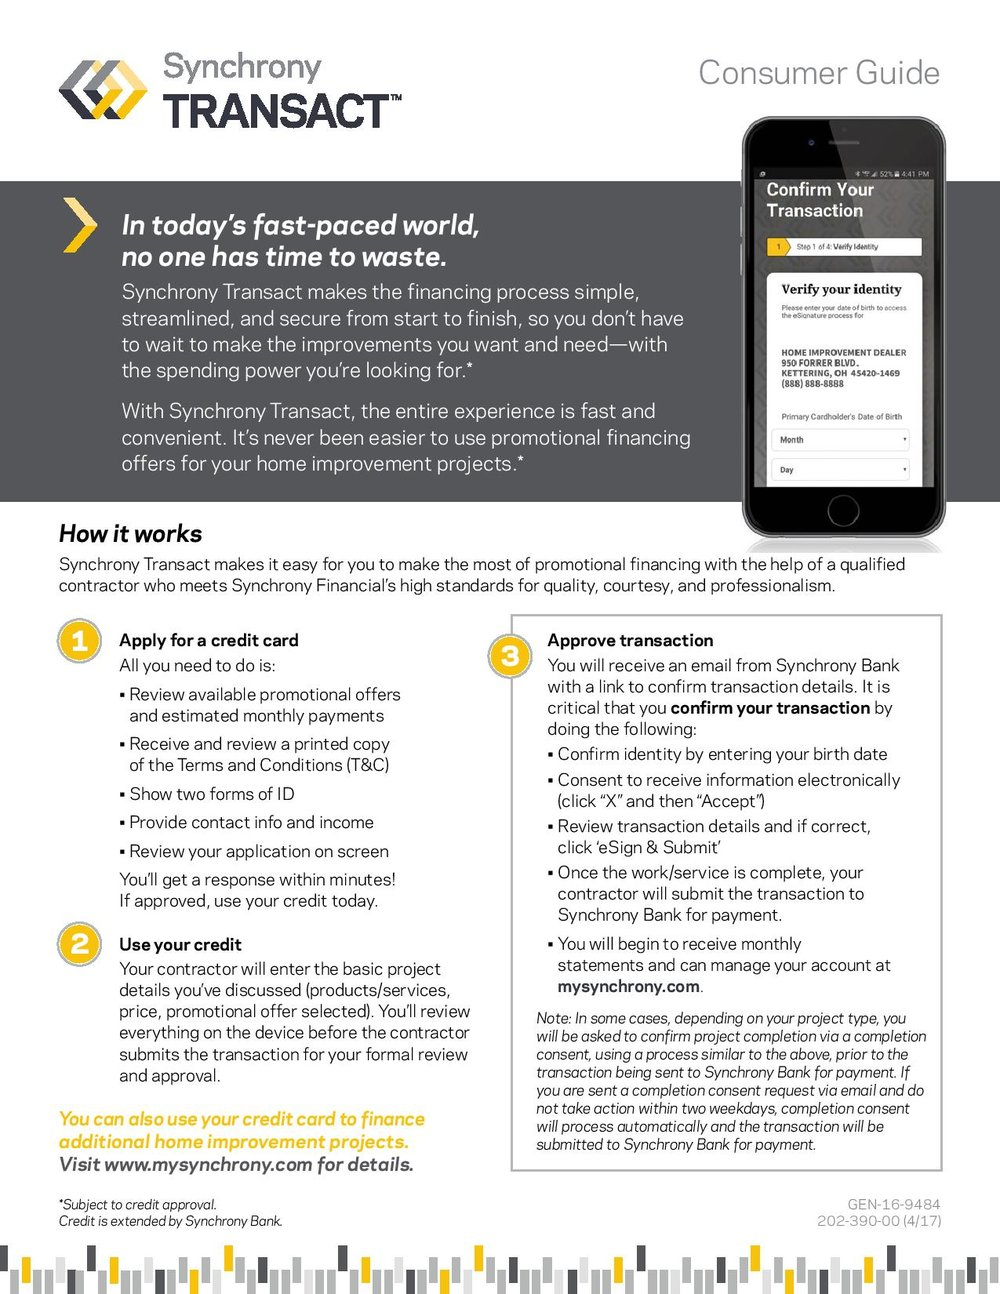 Synchrony Transact - Consumer Guide-page-001.jpg